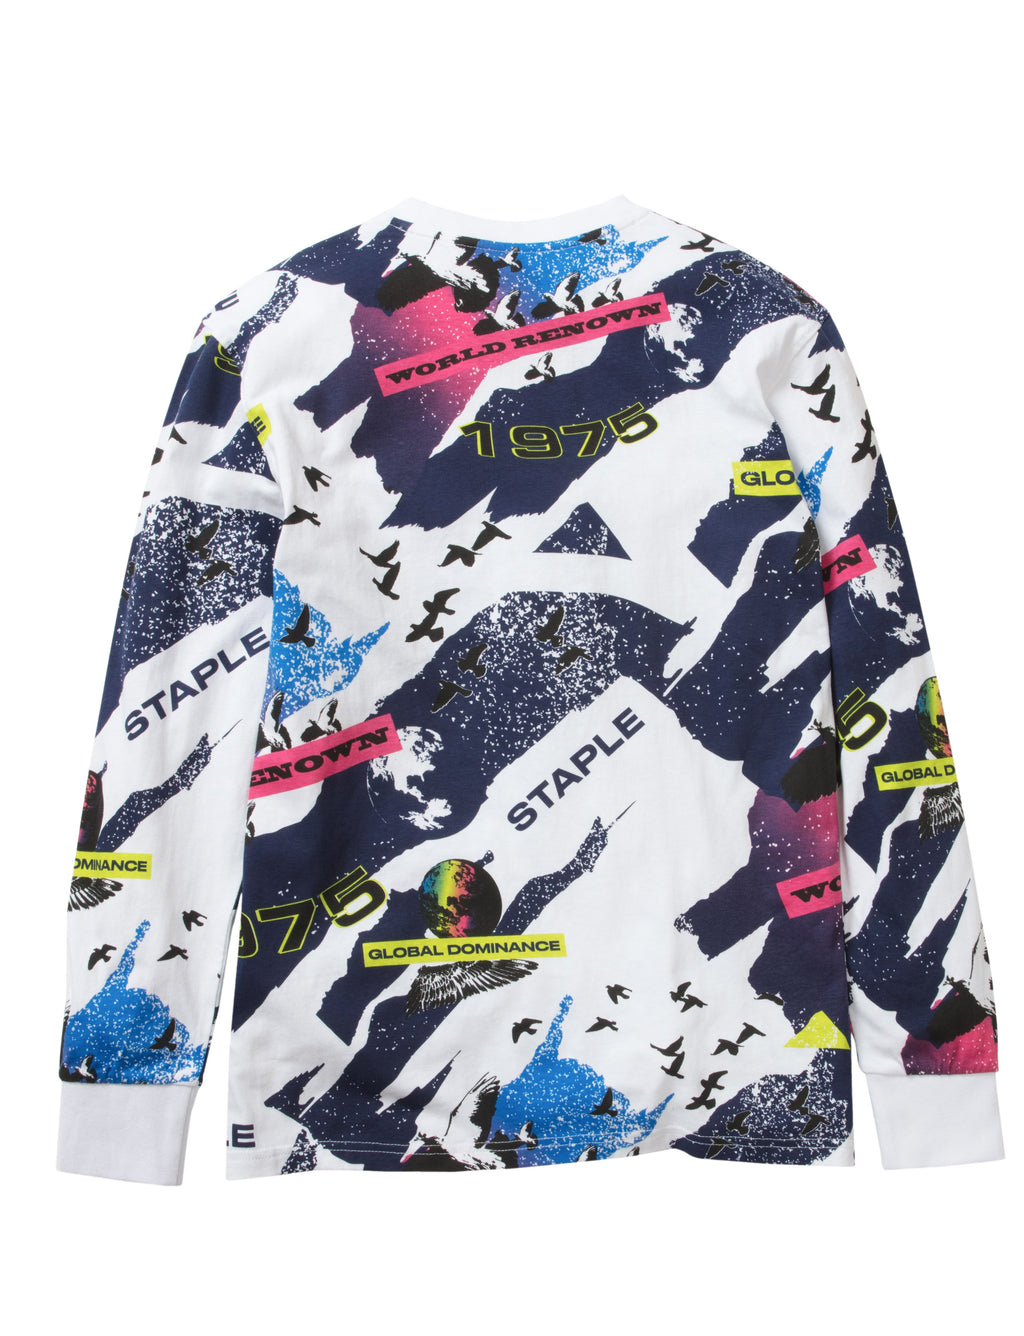 Neo Sport Graphic L/S Tee